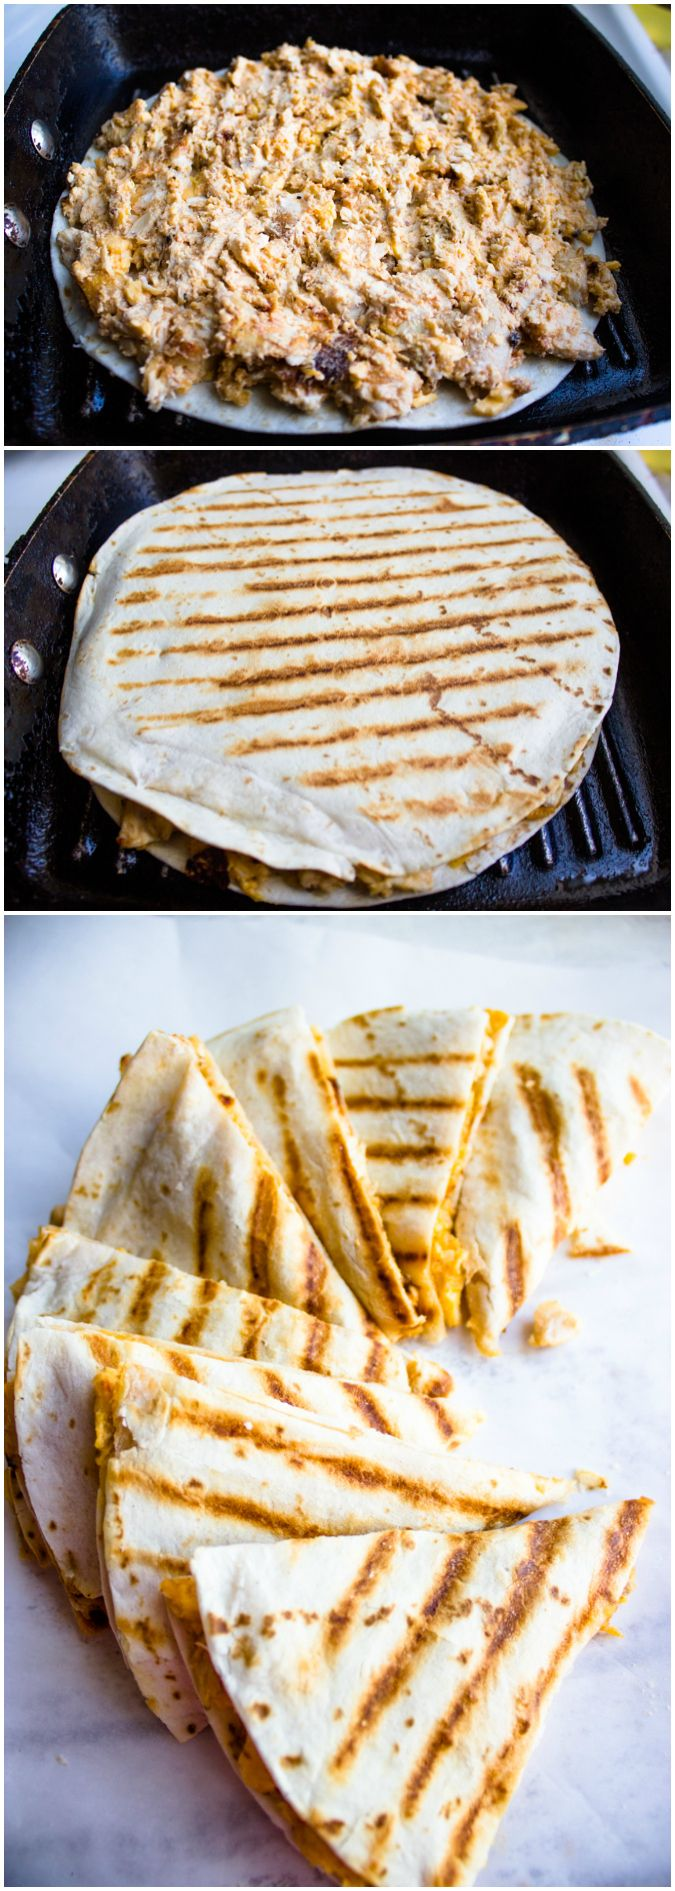 easy chicken quesadillas - added some green pepper and Parmesan cheese. Huge hit. Great flavor!